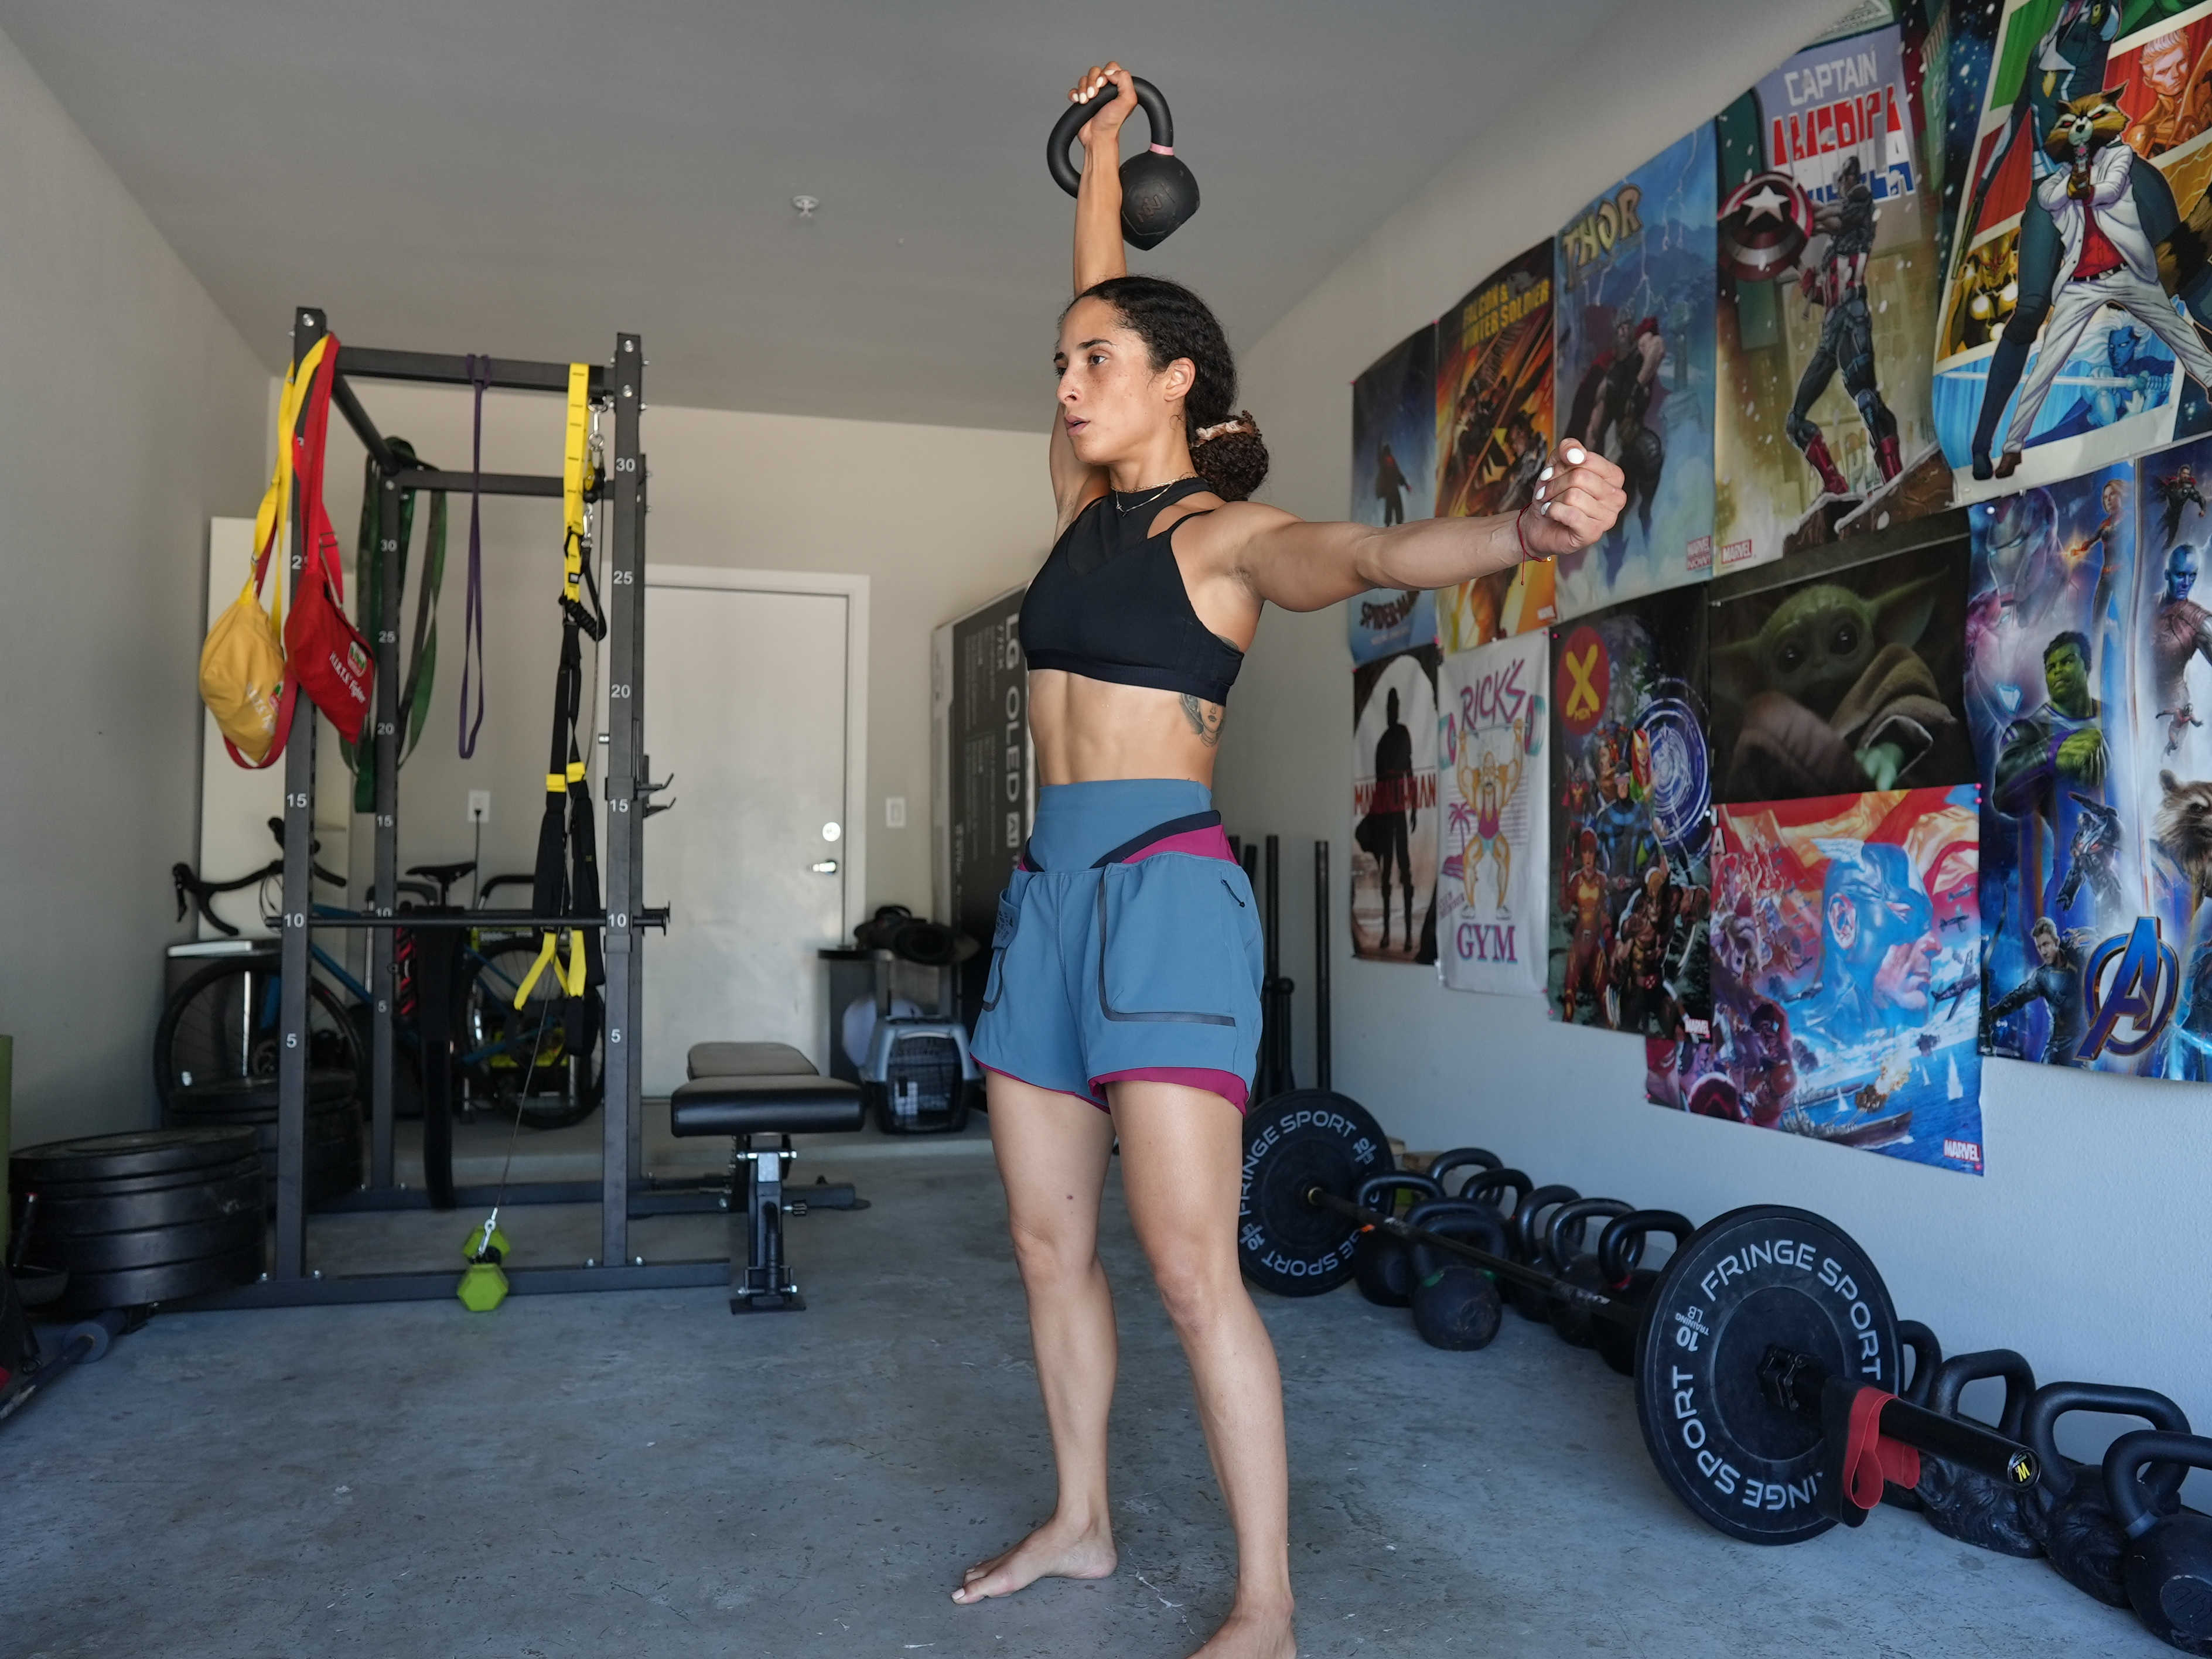 Woman stands in a workout room unilaterally lifting a kettle bell above her head.